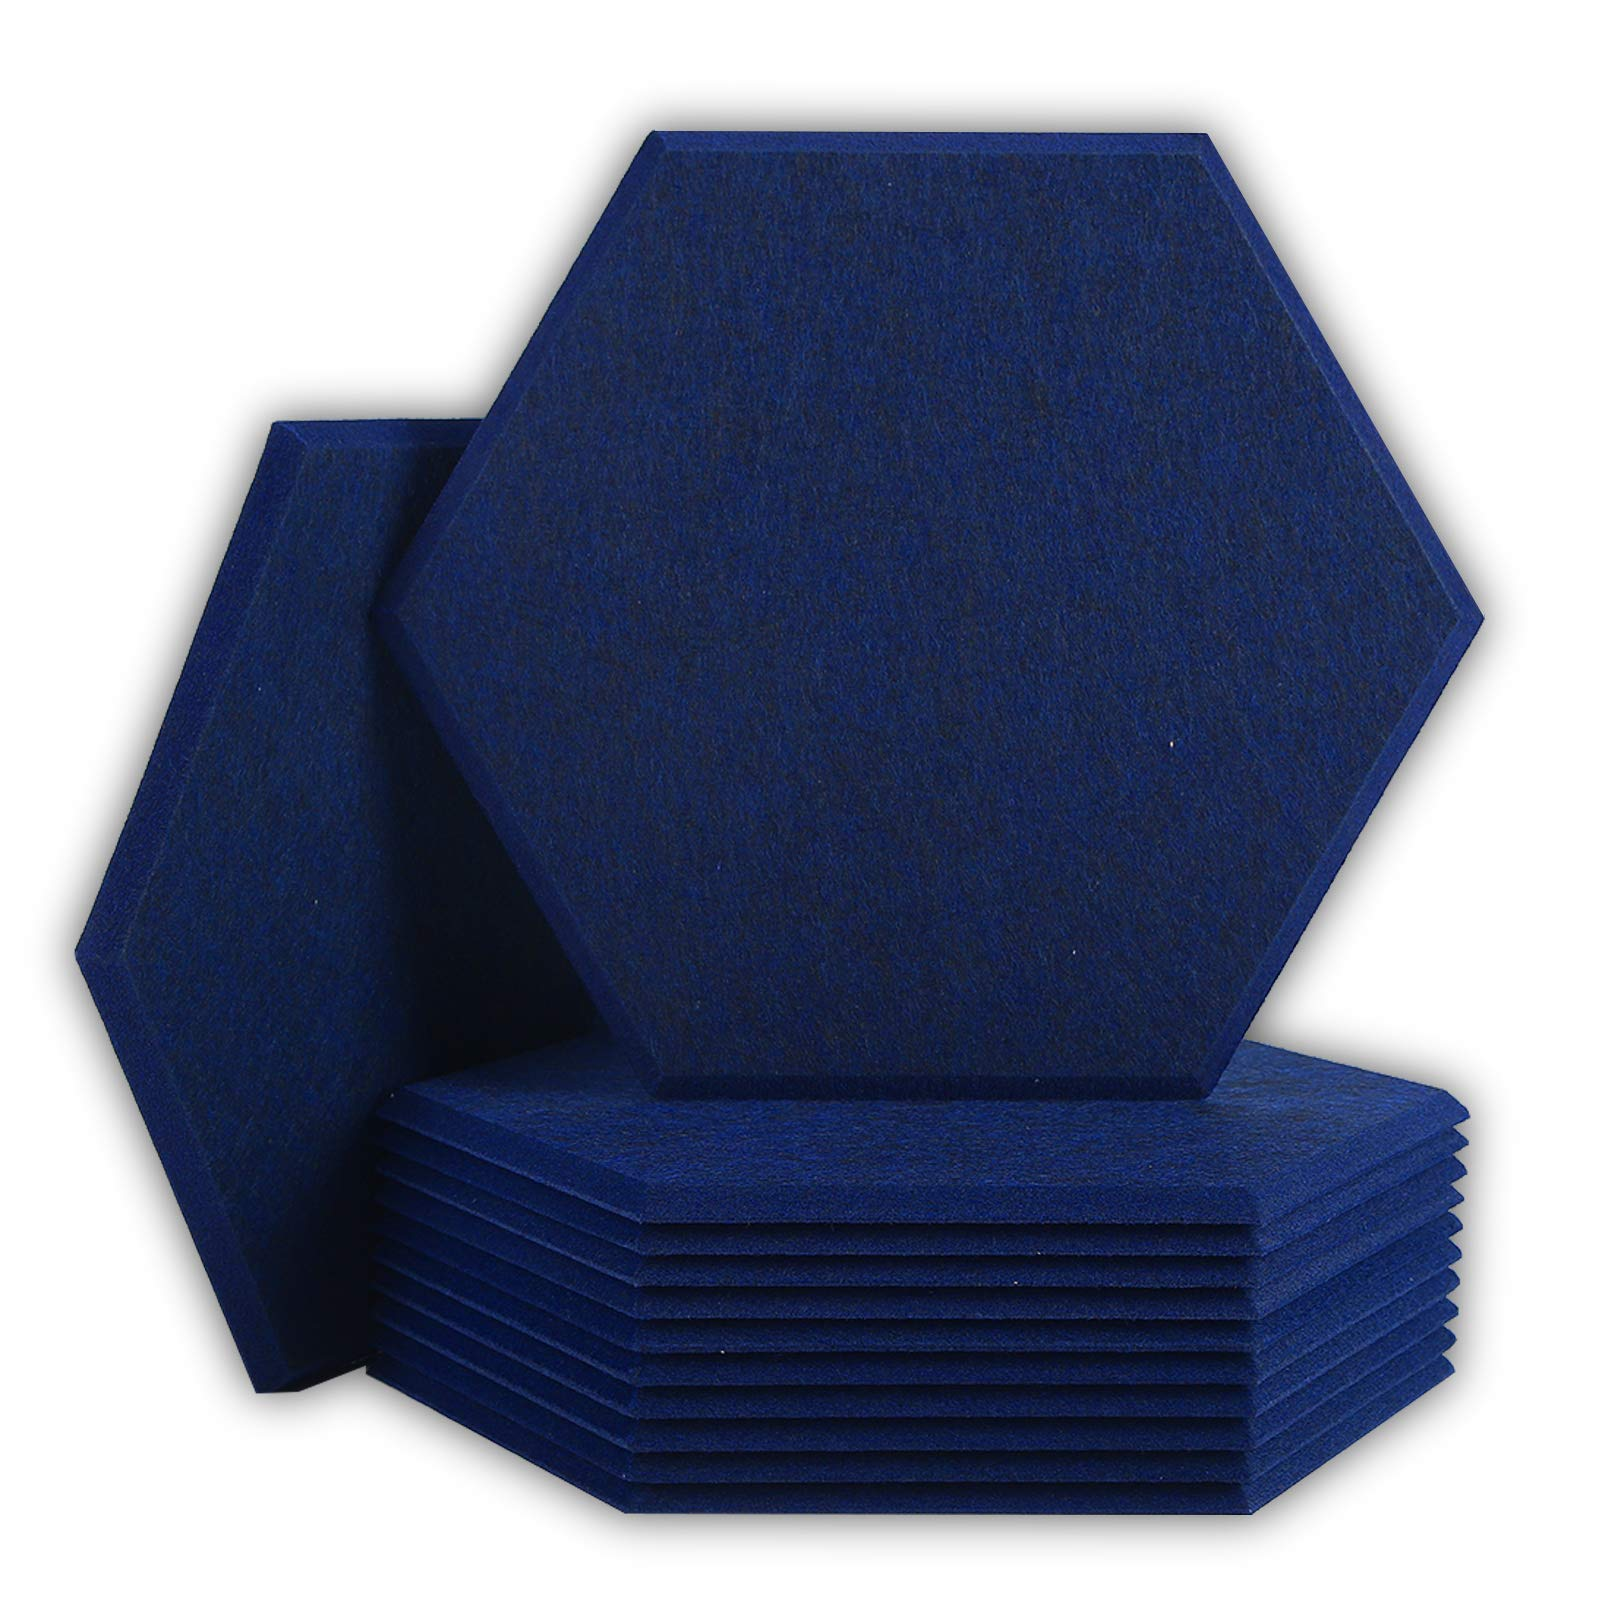 BUBOS 12 Pack Hexagon Acoustic Panels Soundproof Wall Panels,14 X 13 X 0.4Inches Sound Absorbing Panels Acoustical Wall Panels, Acoustic Treatment for Recording Studio, Office, Home Studio,Dark Blue